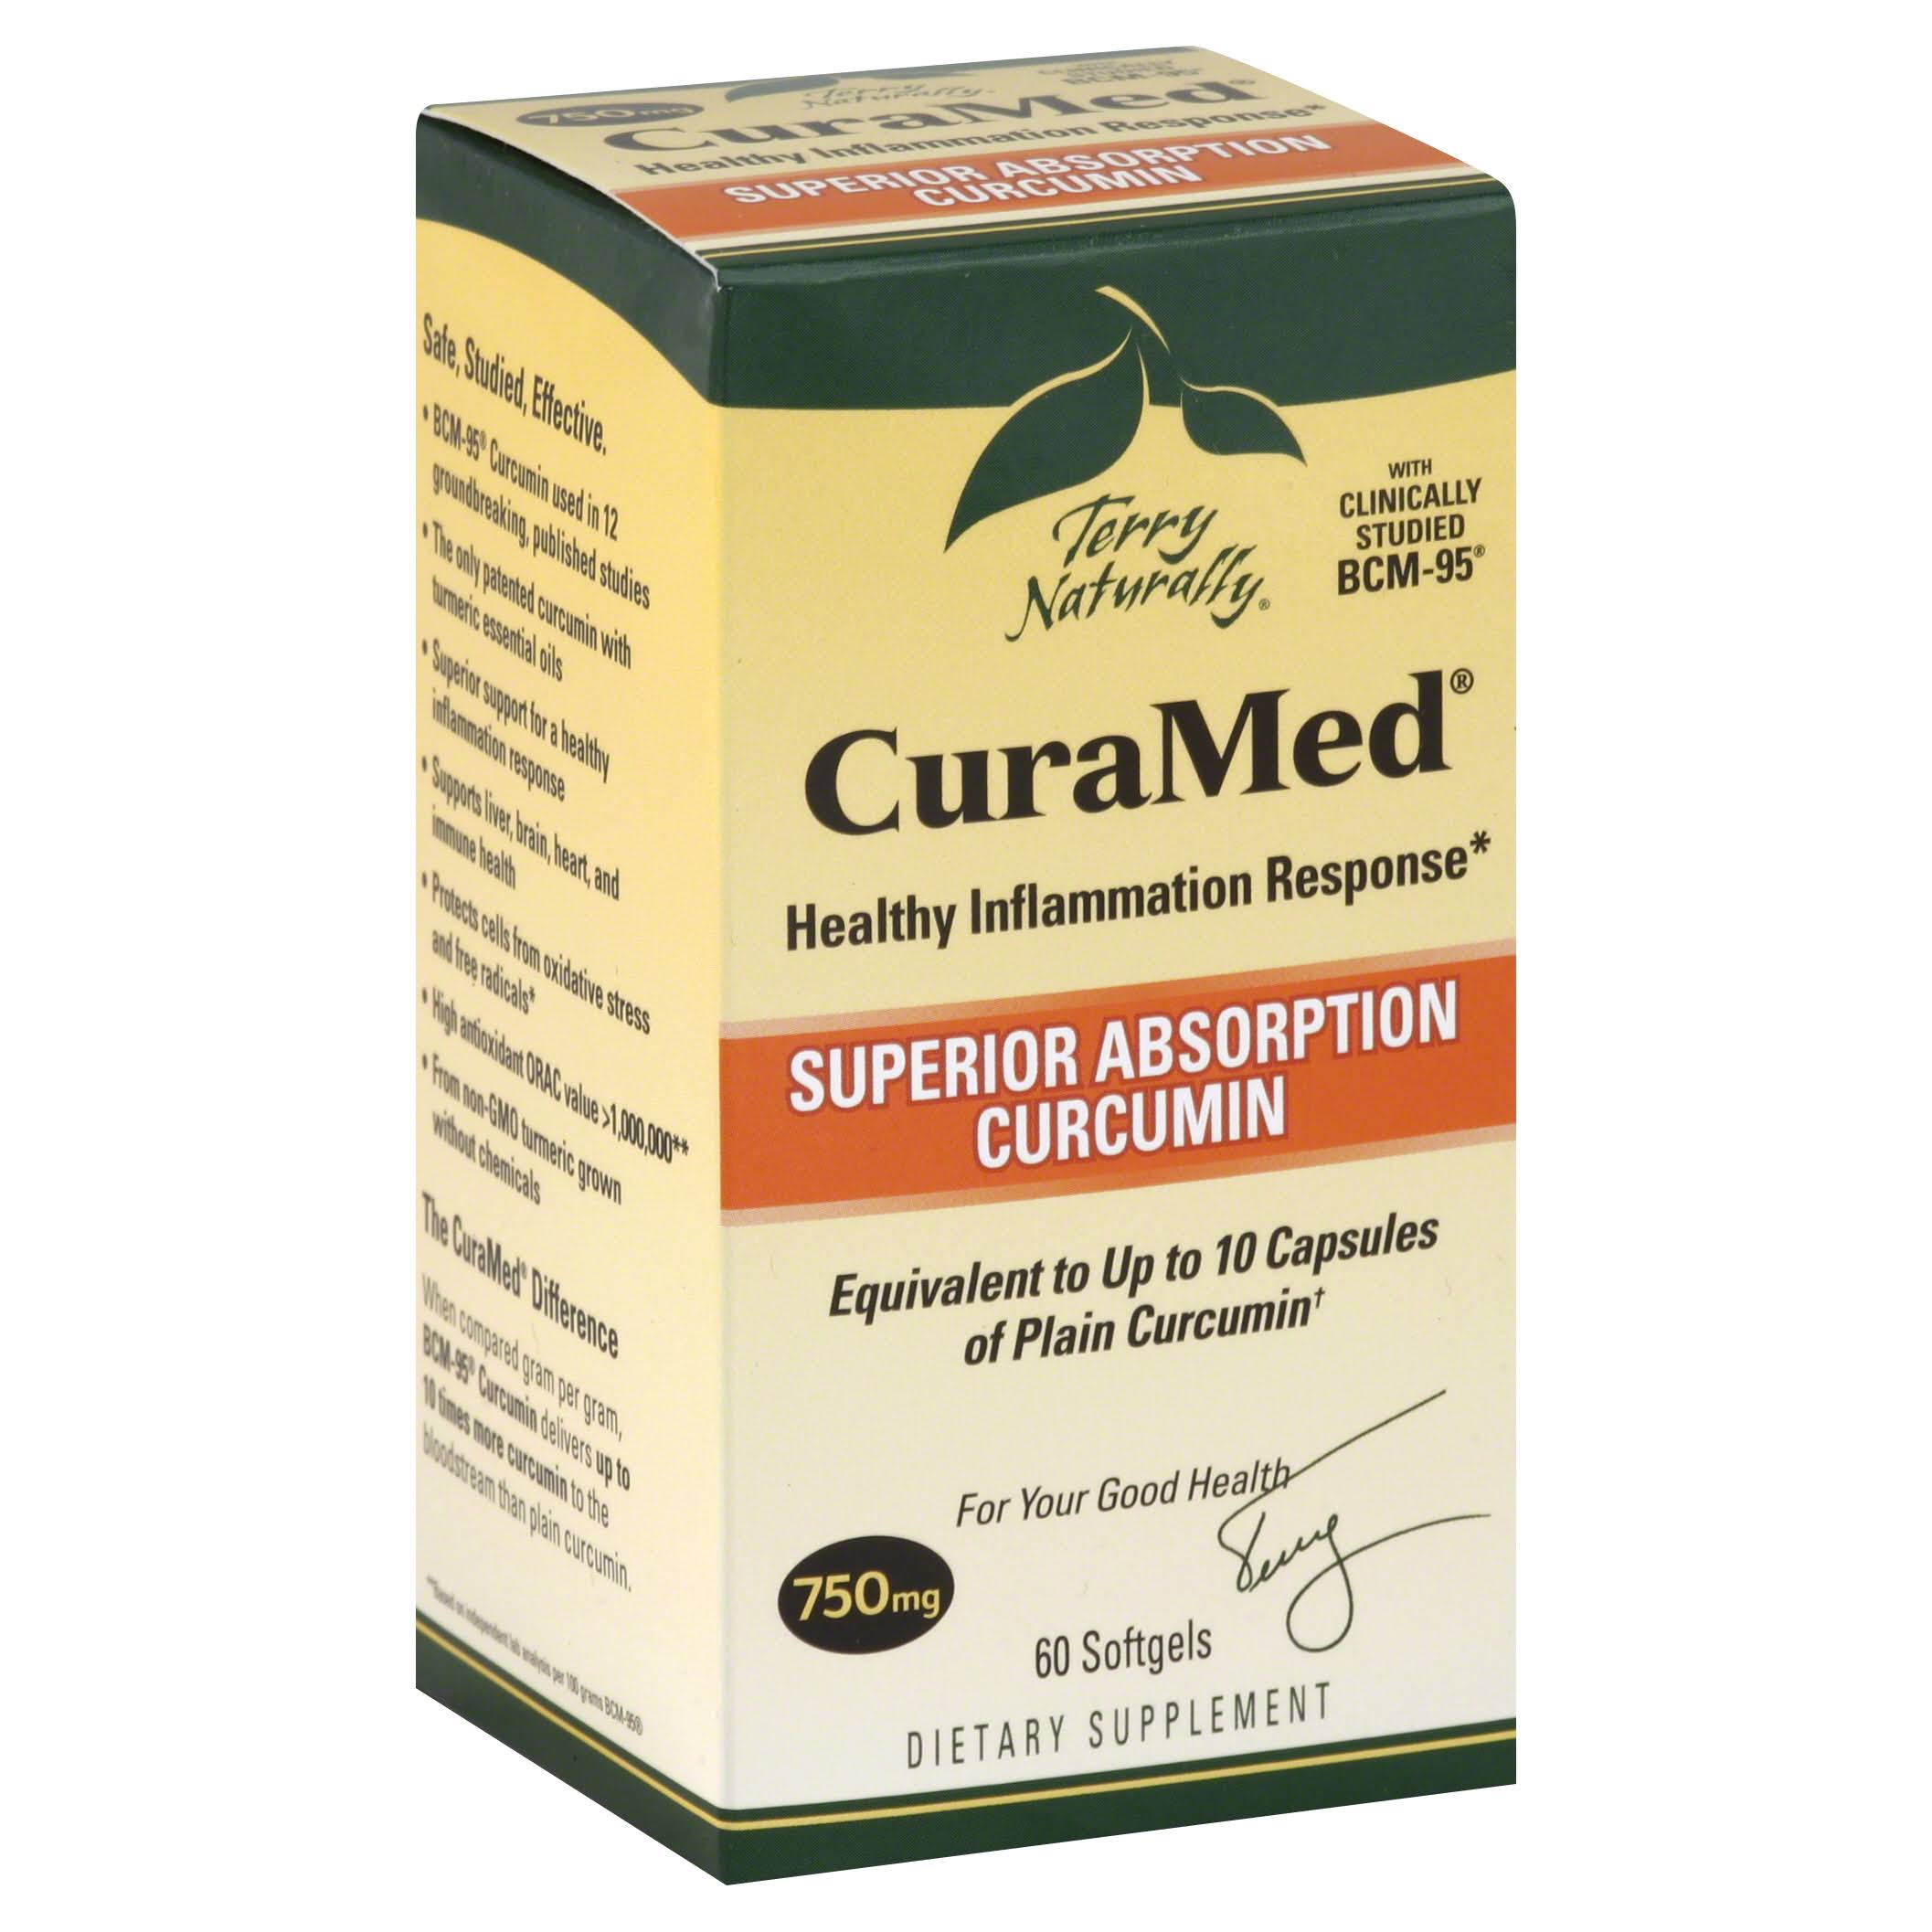 Terry Naturally CuraMed Curcumin BCM-95 - 60 Softgels, 750mg